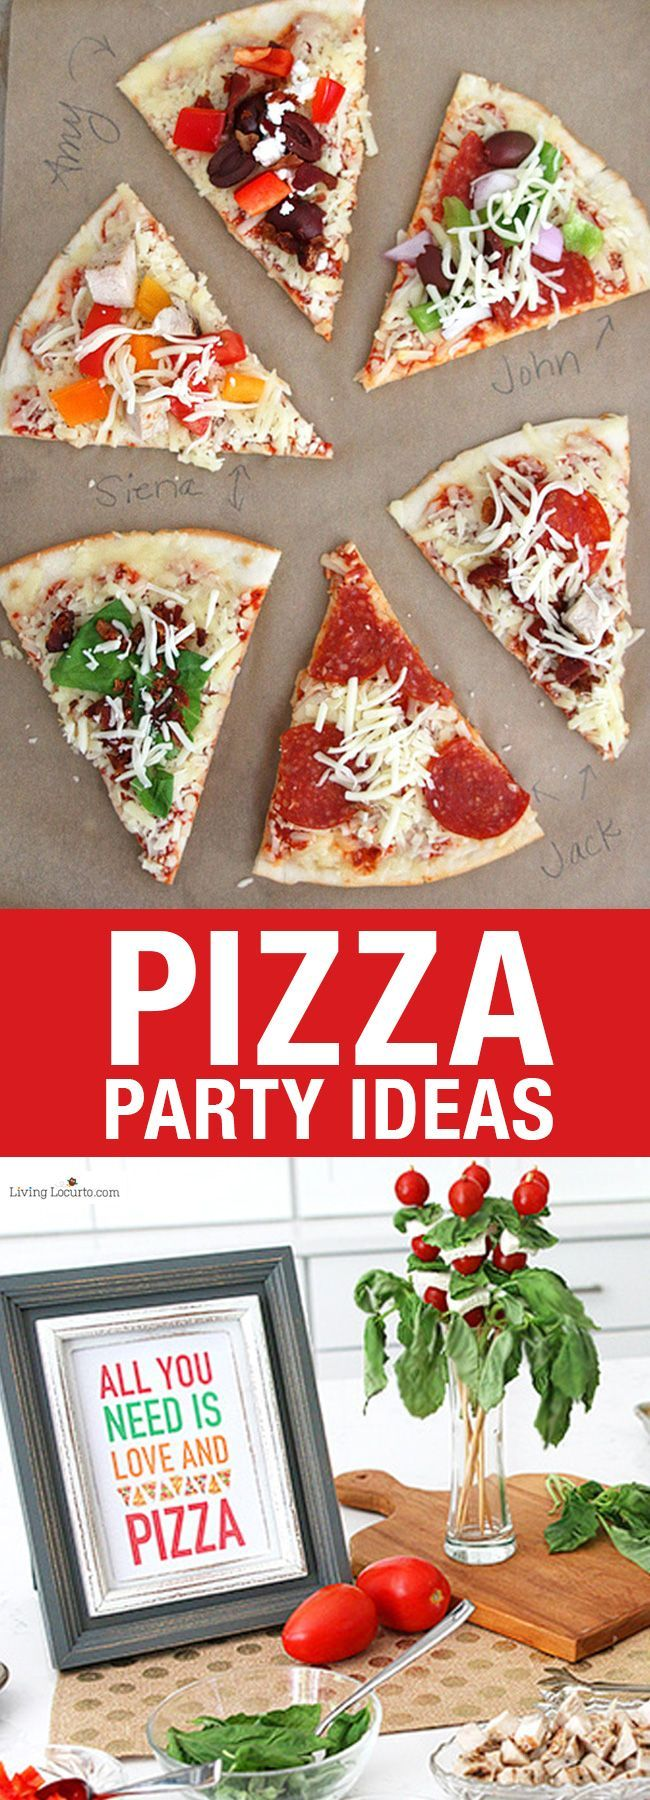 How To Make A Frozen Pizza 314 Best Pizza Pizza Images On Pinterest Pizza Recipes Pizza